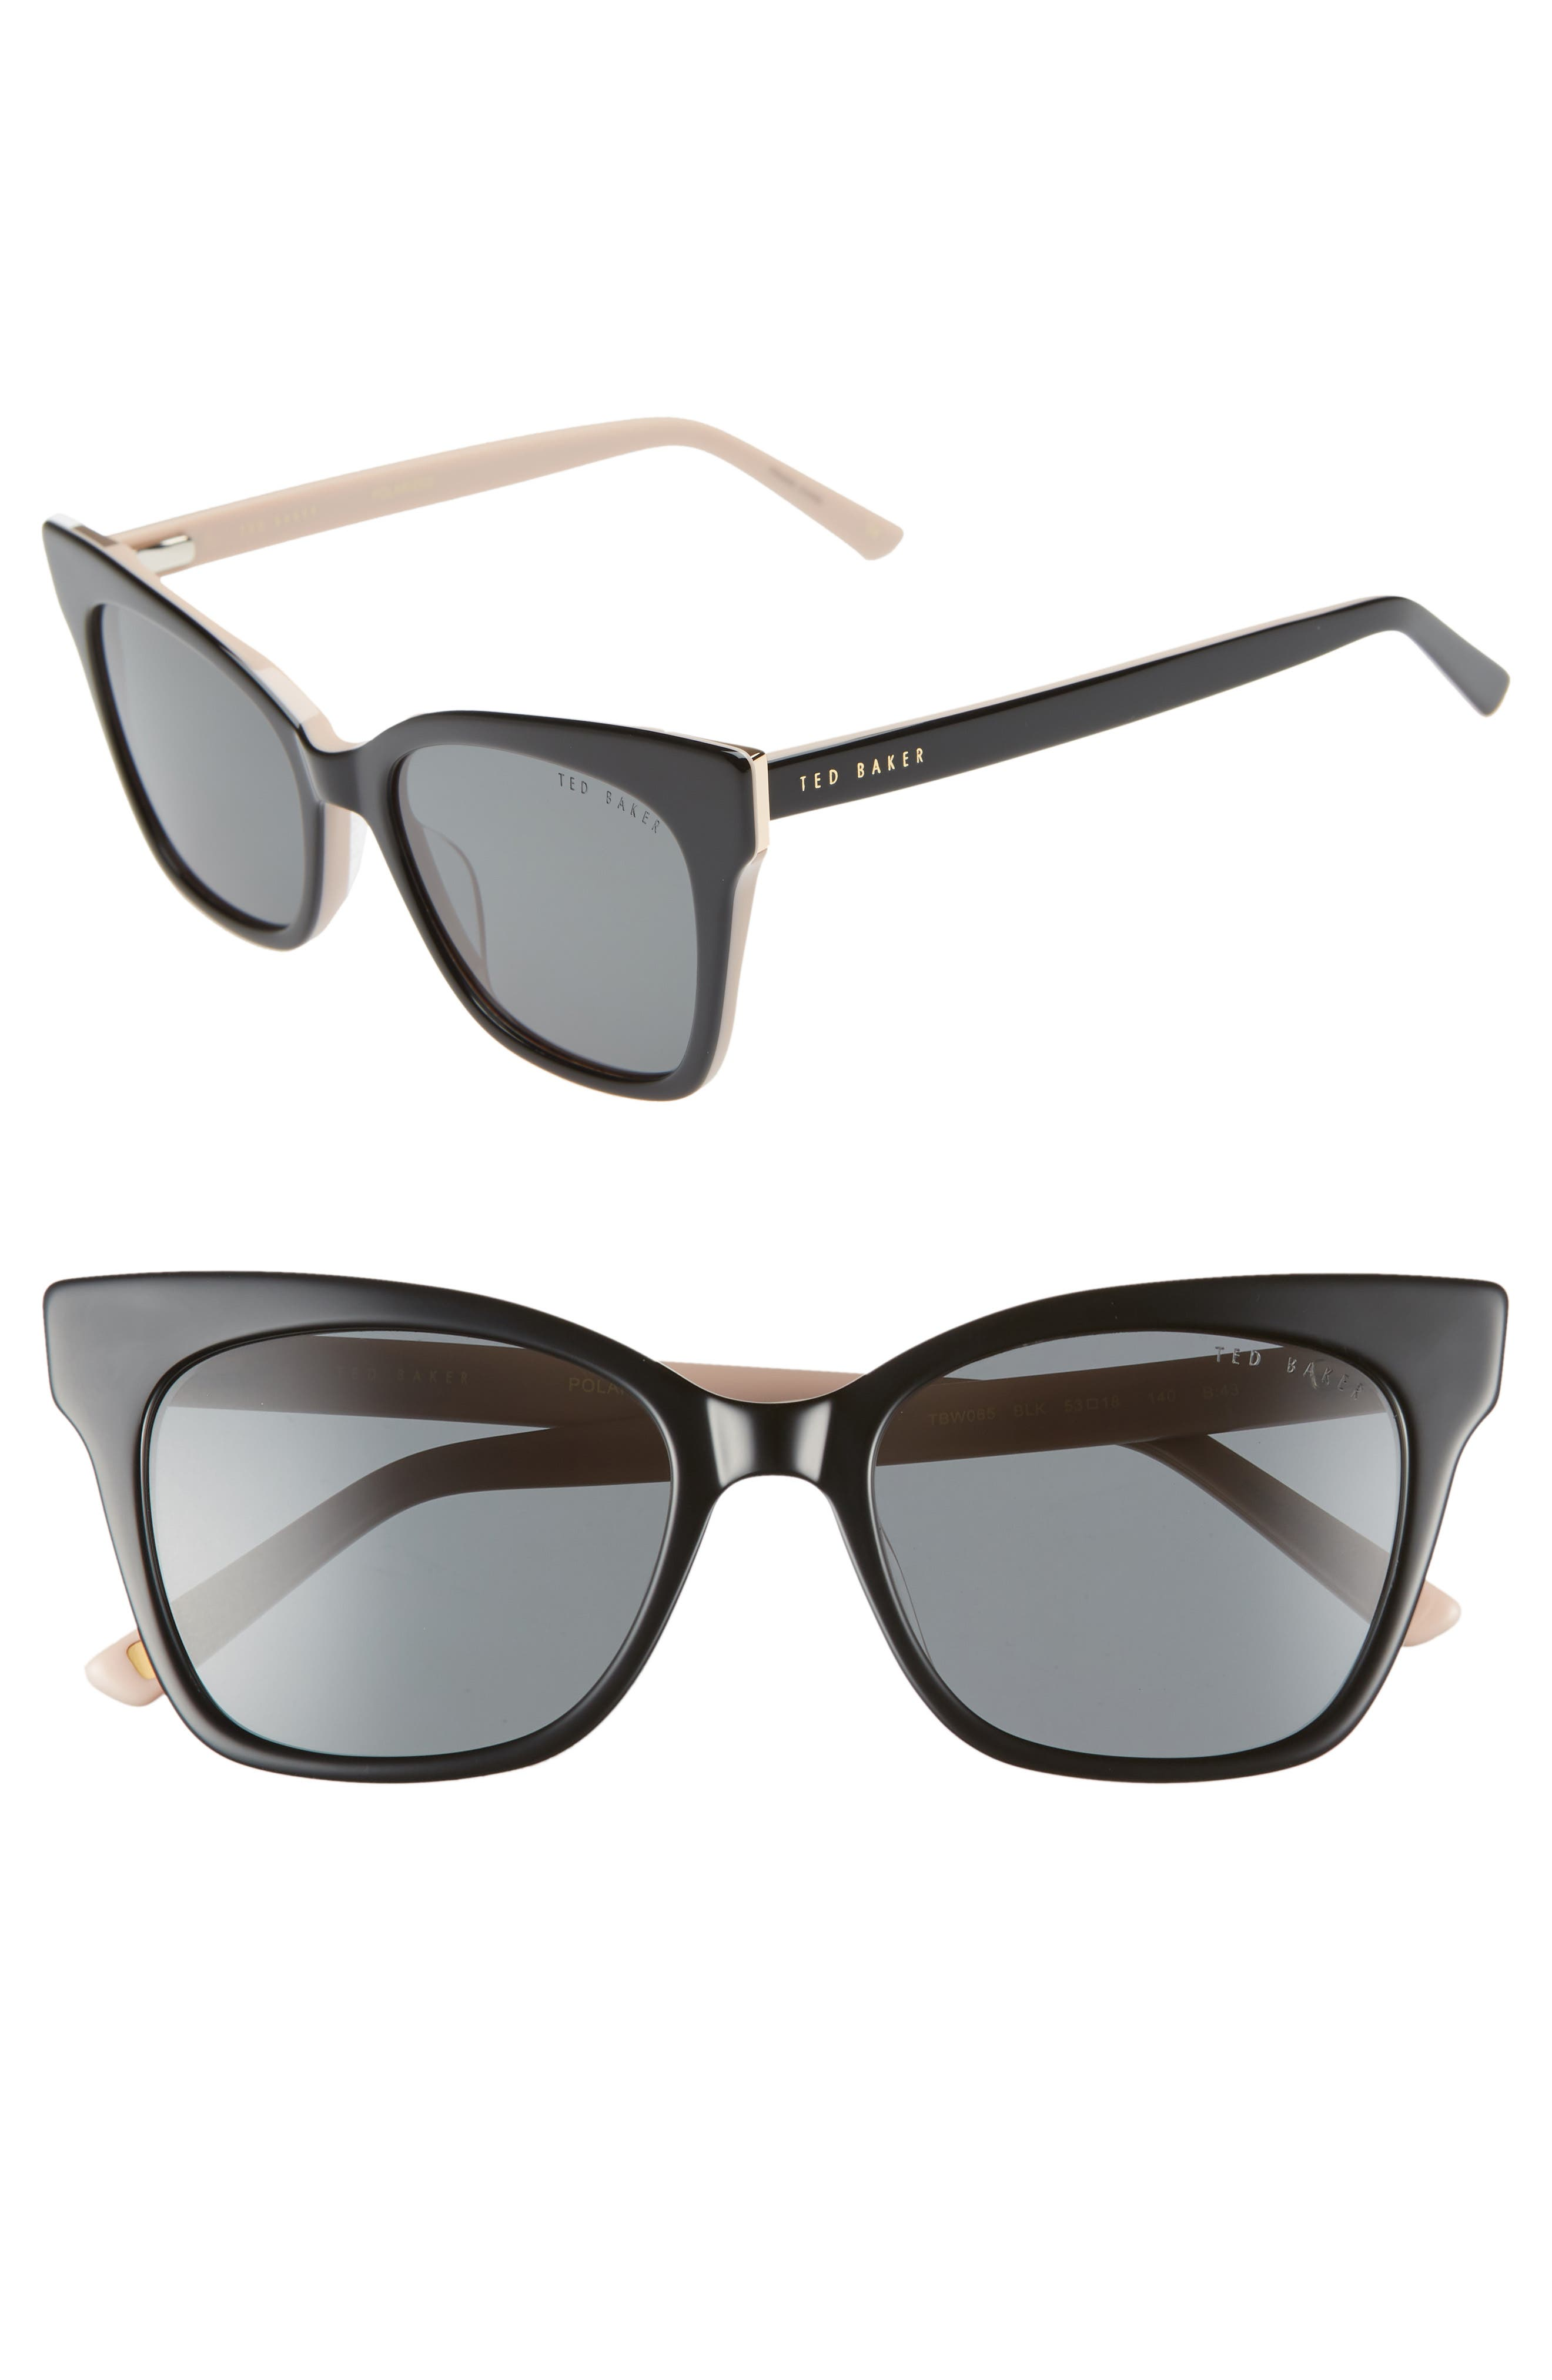 53mm Cat Eye Sunglasses,                             Main thumbnail 1, color,                             BLACK